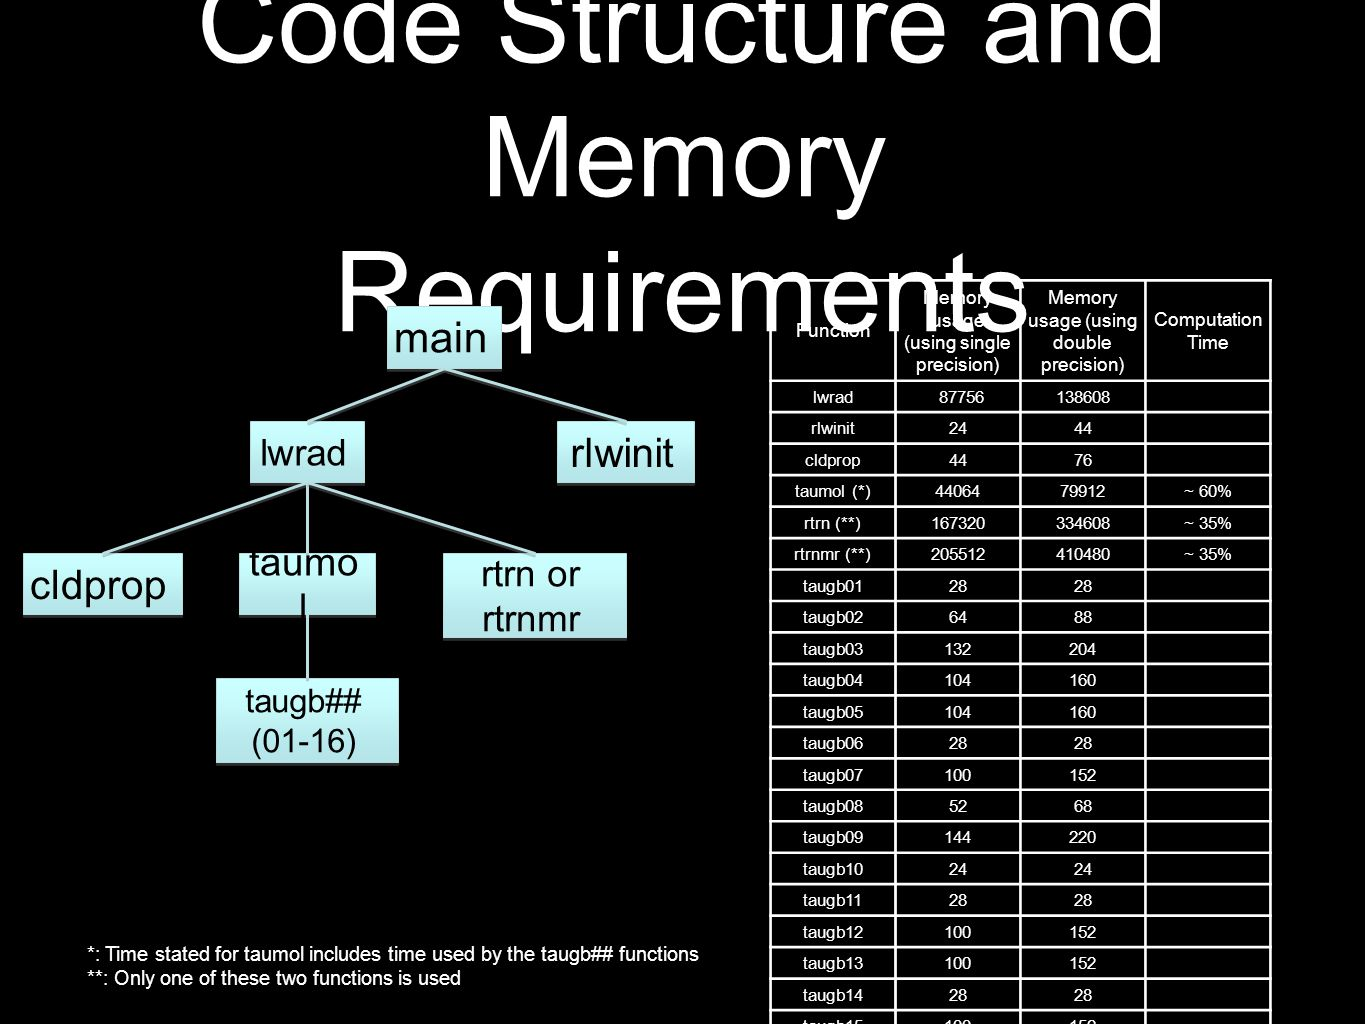 Code Structure and Memory Requirements main lwrad rlwinitcldprop taumo l rtrn or rtrnmr taugb## (01-16) Function Memory usage (using single precision) Memory usage (using double precision) Computation Time lwrad87756138608 rlwinit2444 cldprop4476 taumol (*)4406479912~ 60% rtrn (**)167320334608~ 35% rtrnmr (**)205512410480~ 35% taugb0128 taugb026488 taugb03132204 taugb04104160 taugb05104160 taugb0628 taugb07100152 taugb085268 taugb09144220 taugb1024 taugb1128 taugb12100152 taugb13100152 taugb1428 taugb15100152 taugb16100152 *: Time stated for taumol includes time used by the taugb## functions **: Only one of these two functions is used